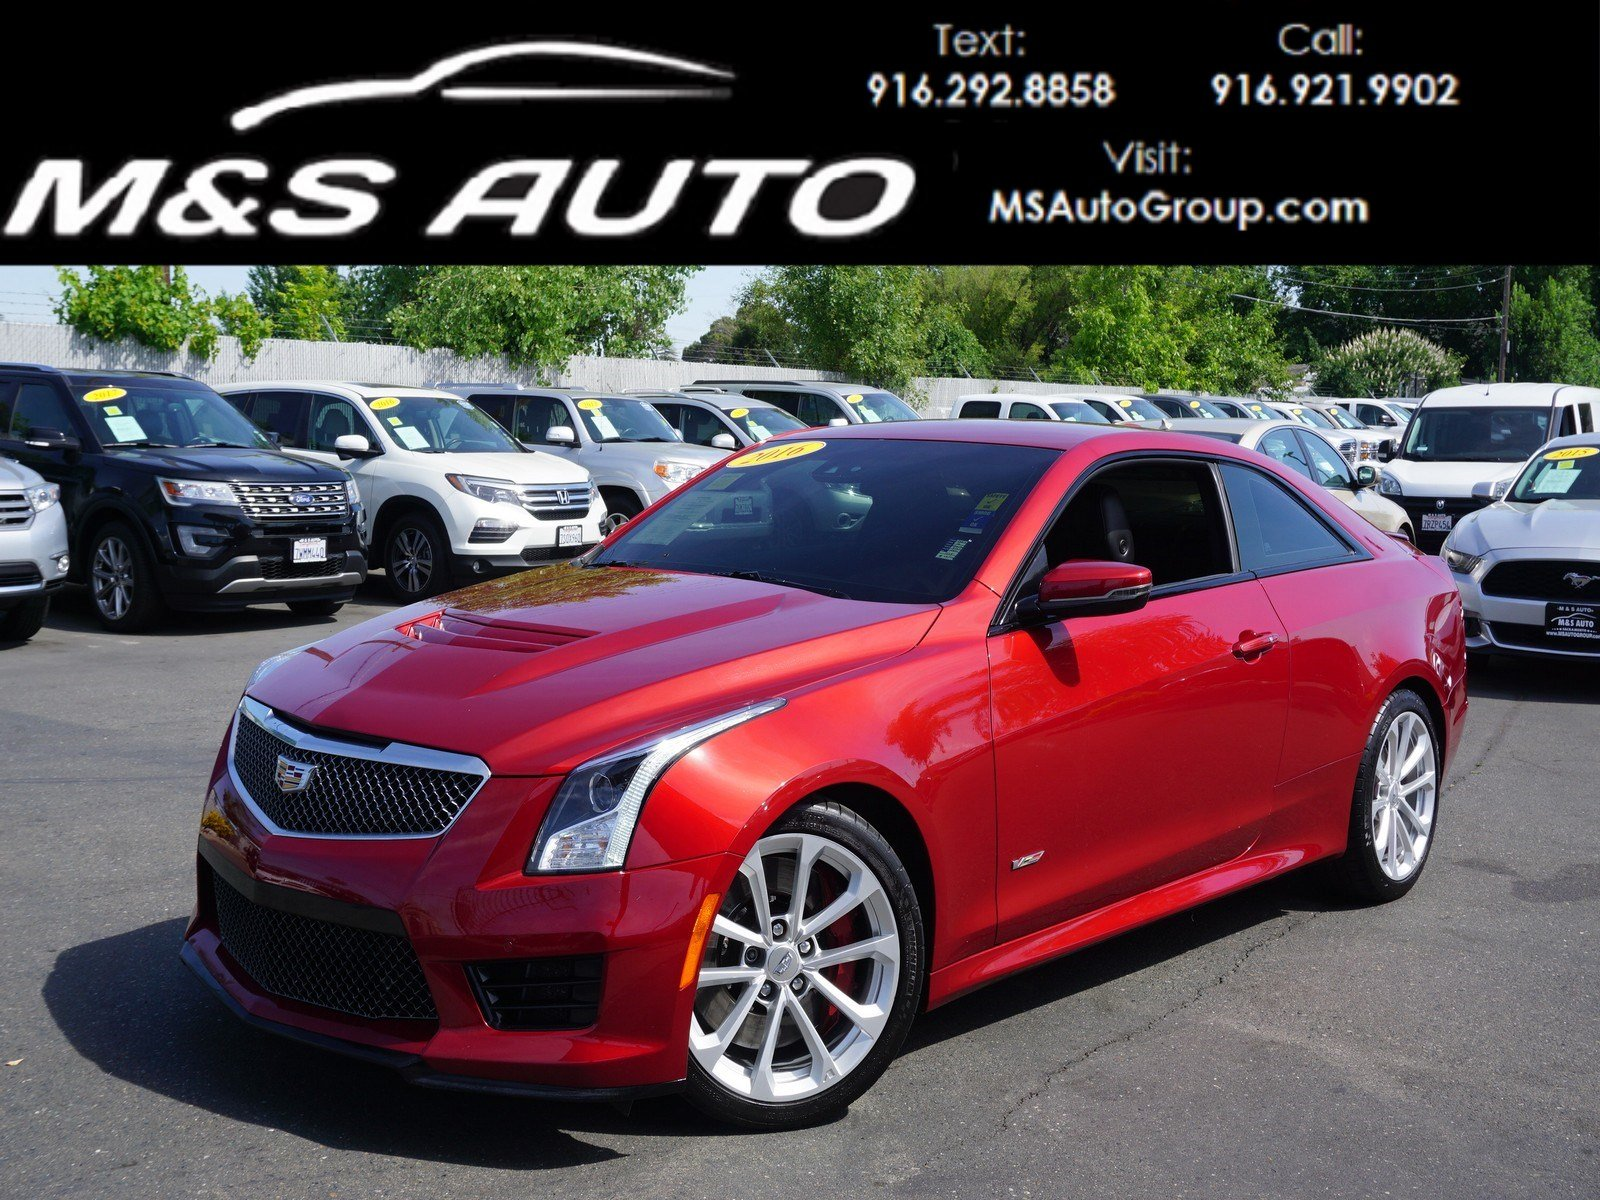 Cadillac Ats V Coupe >> Pre Owned 2016 Cadillac Ats V Coupe Coupe 2d 2dr Car In Sacramento